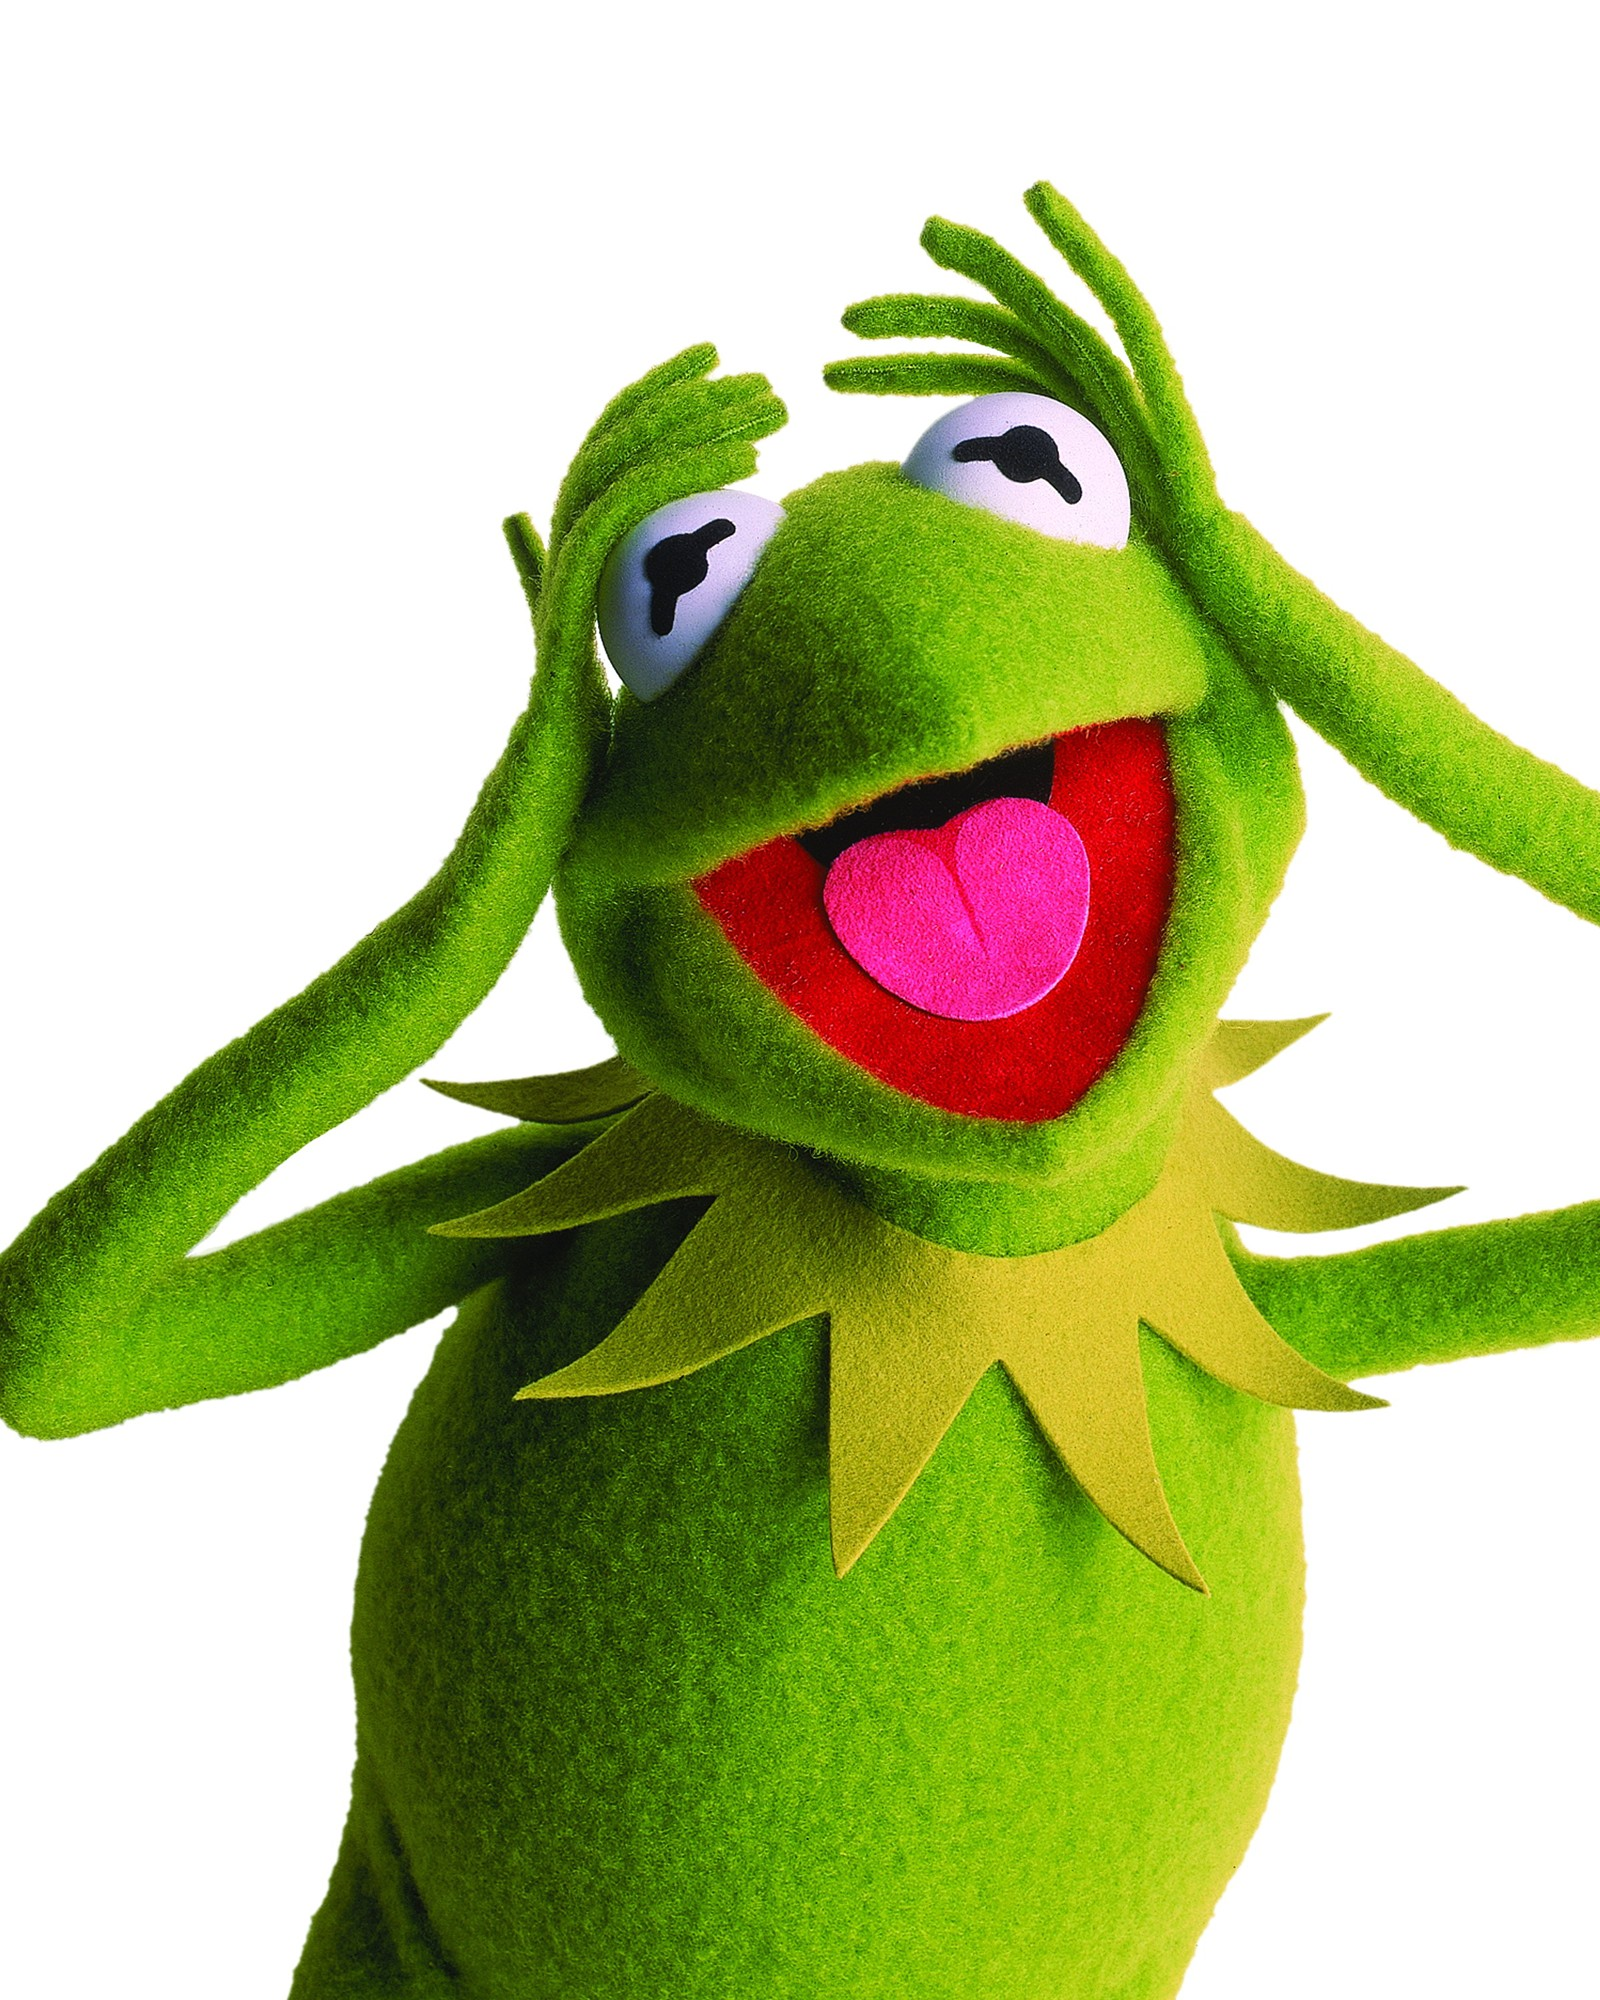 Muppet Quotes Life Quotesgram: Youtube Muppet Old Guys Quotes. QuotesGram